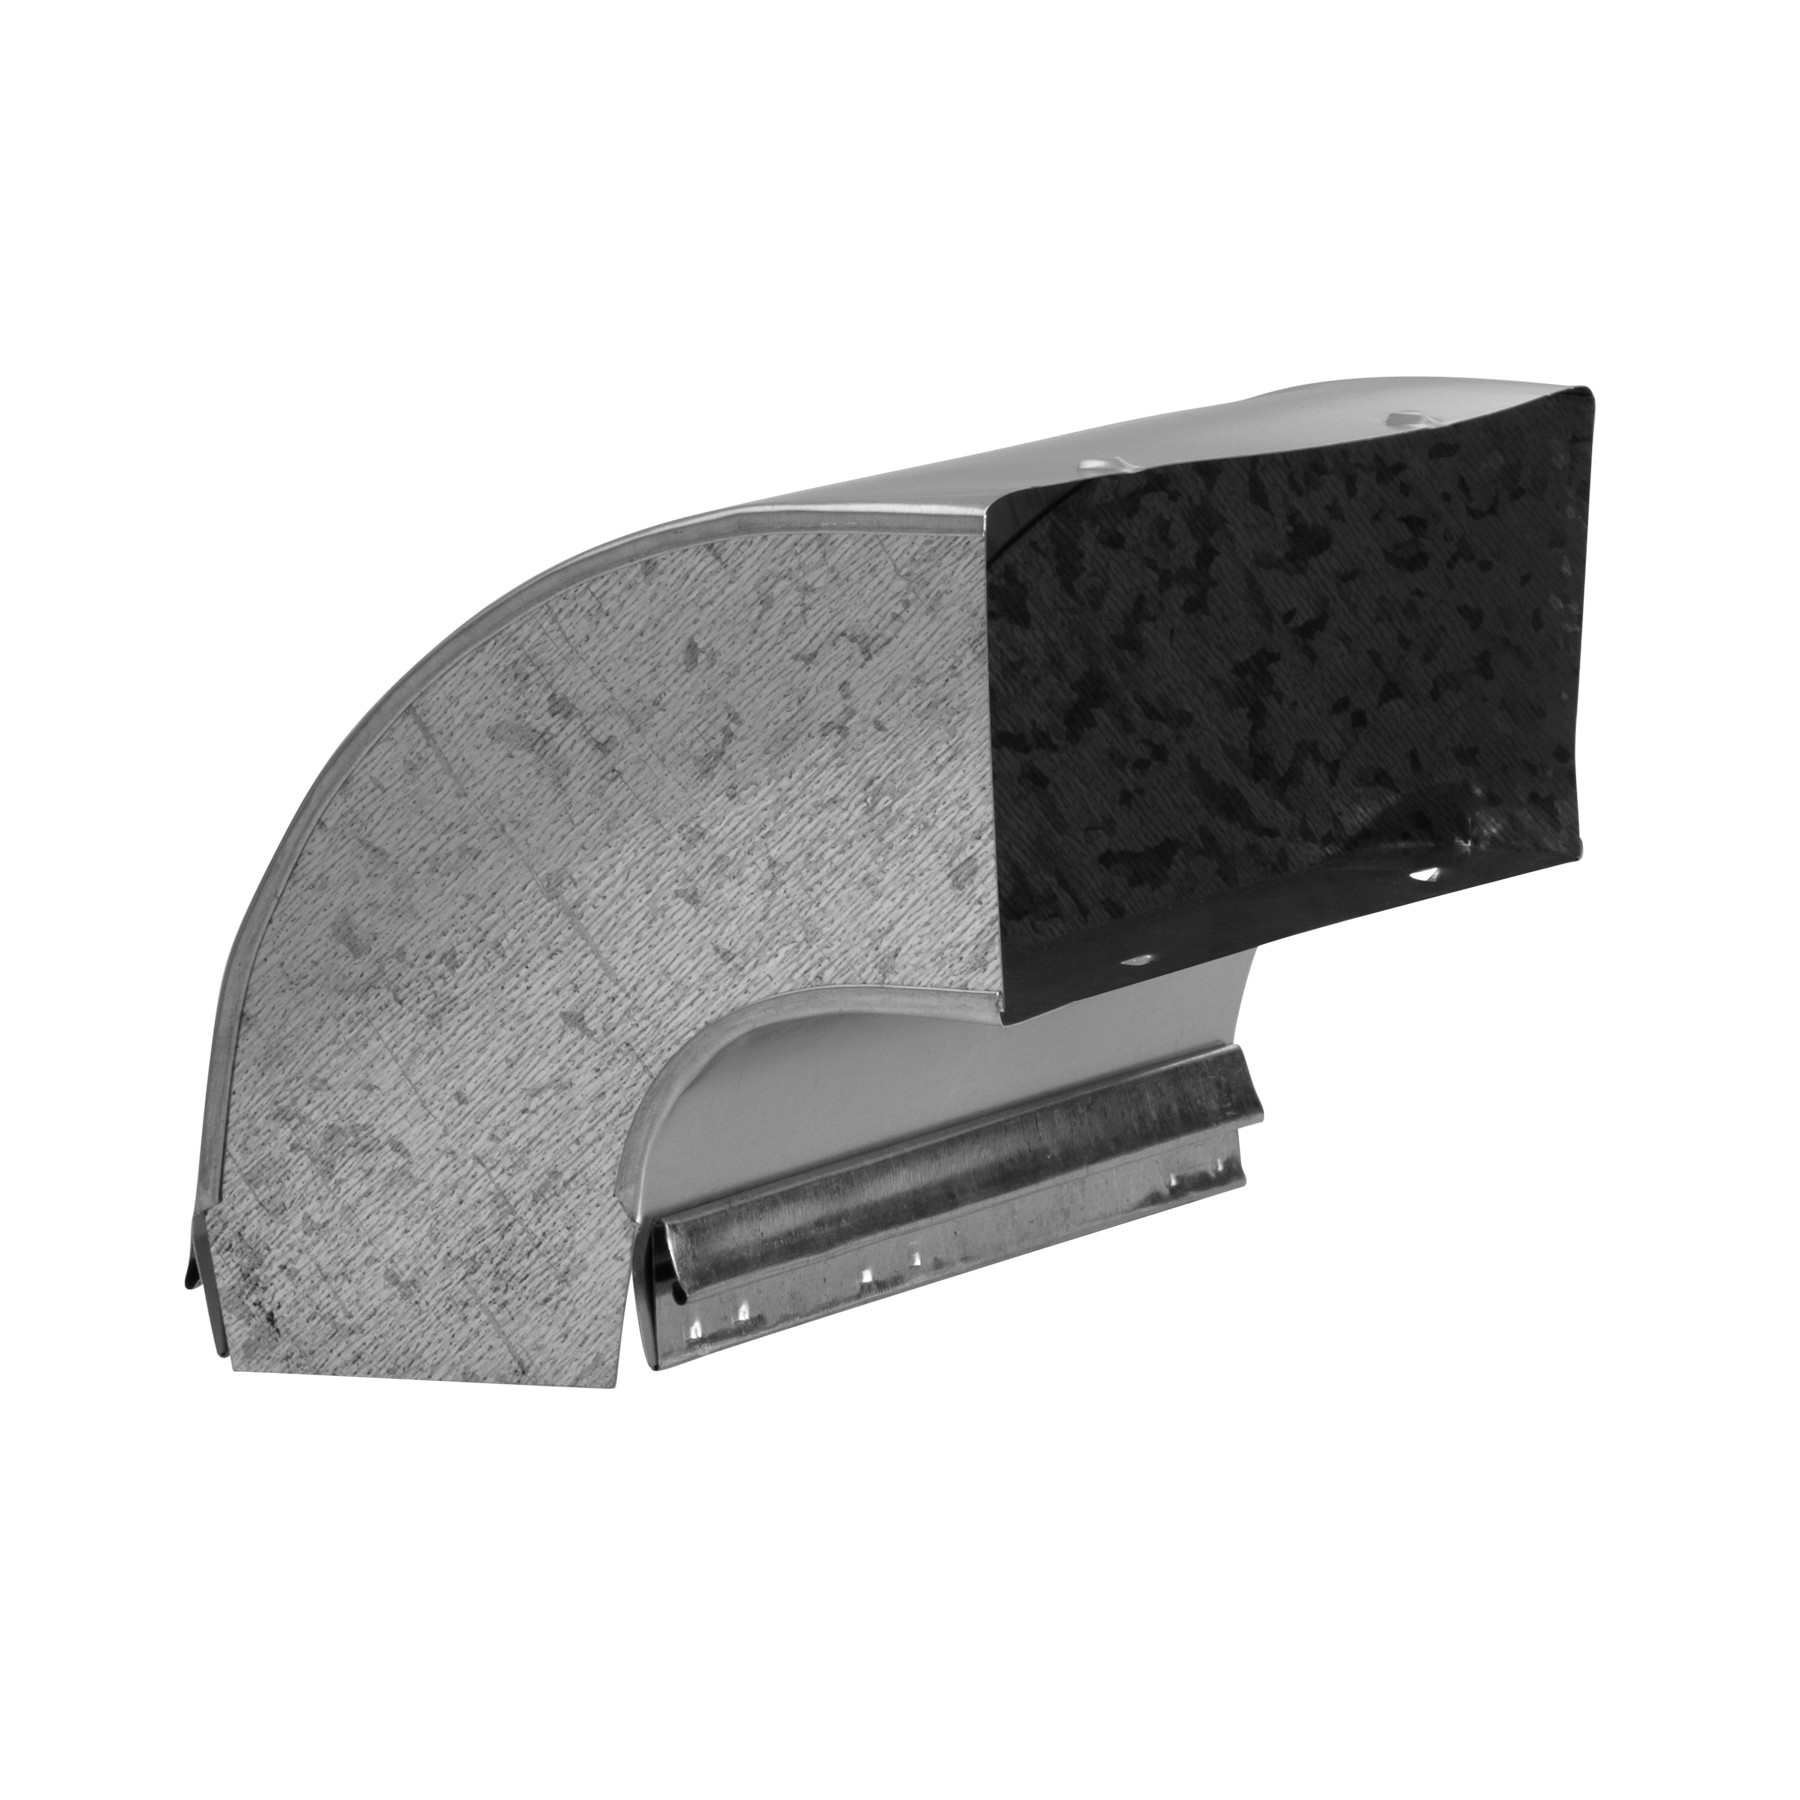 Broan-NuTone® 90-Degree Elbow Transition for Range Hoods and Bath Ventilation Fans